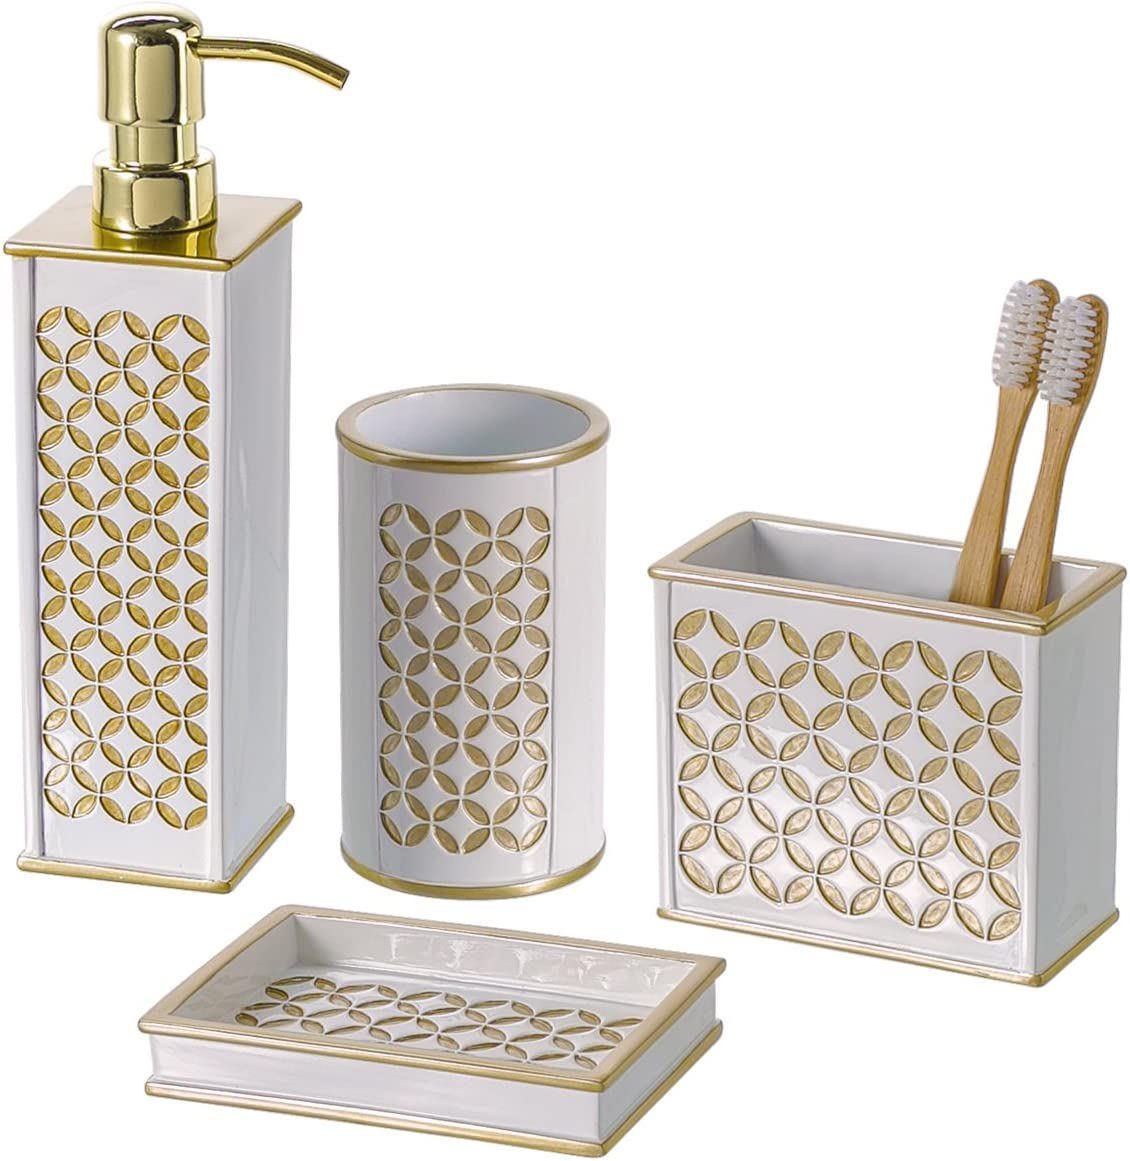 Amazon Com Creative Scents Diamond Lattice 4 Piece Bathroom Accessories Sets Includes Decorative Lotion Dispenser Dish Tumbler Toothbrush Holder Gift Packaged White Gold Home Kitchen